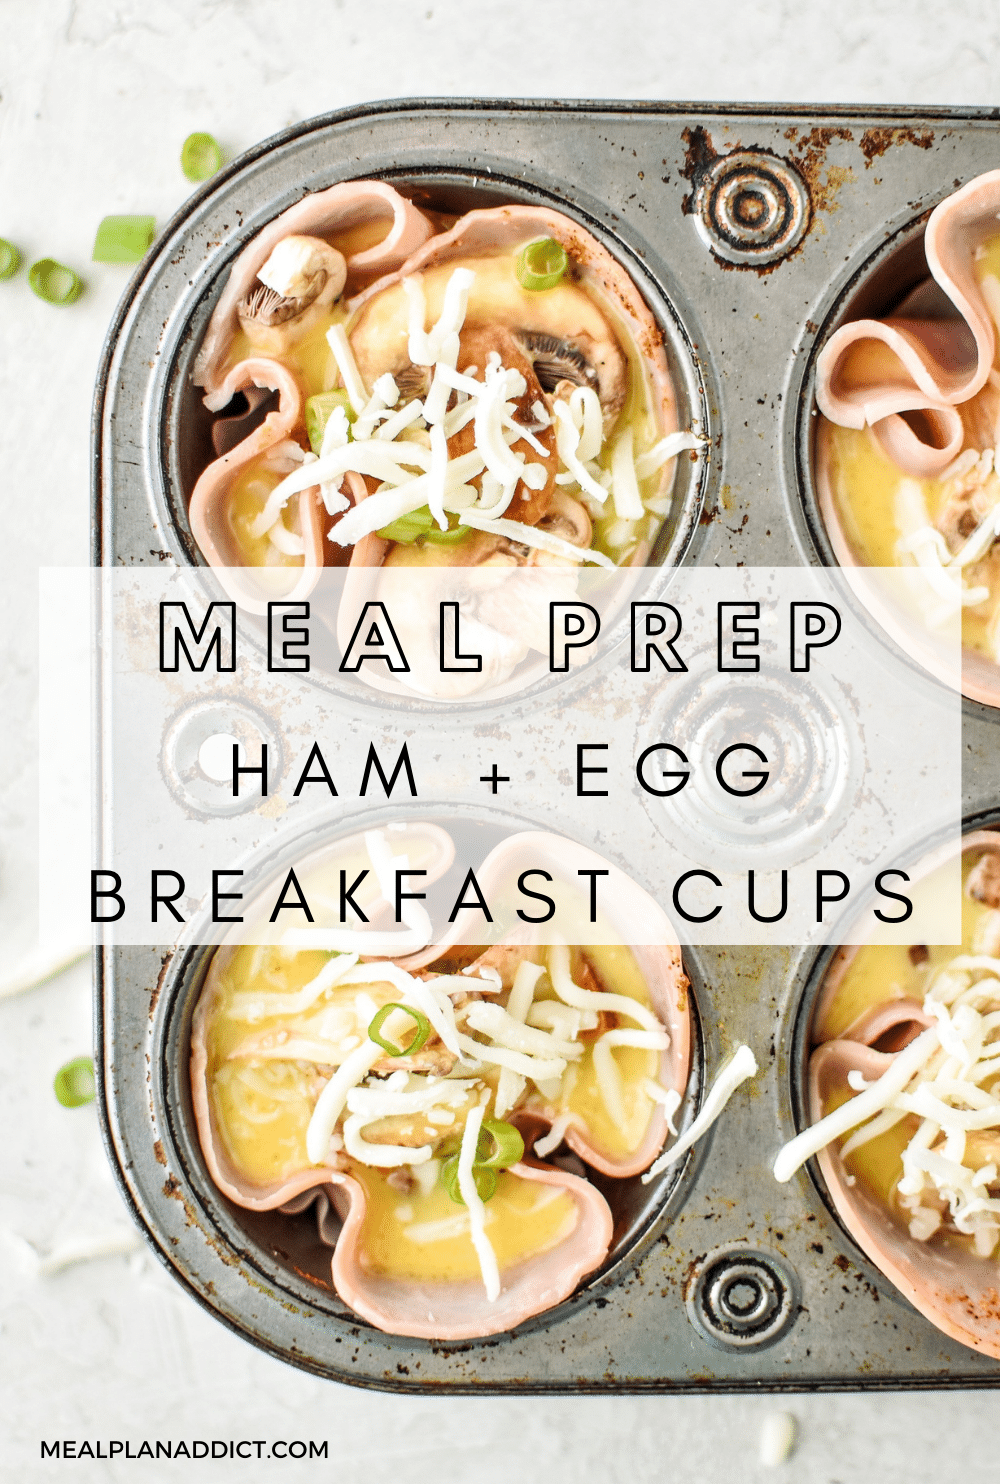 Breakfast cup pin for Pinterest